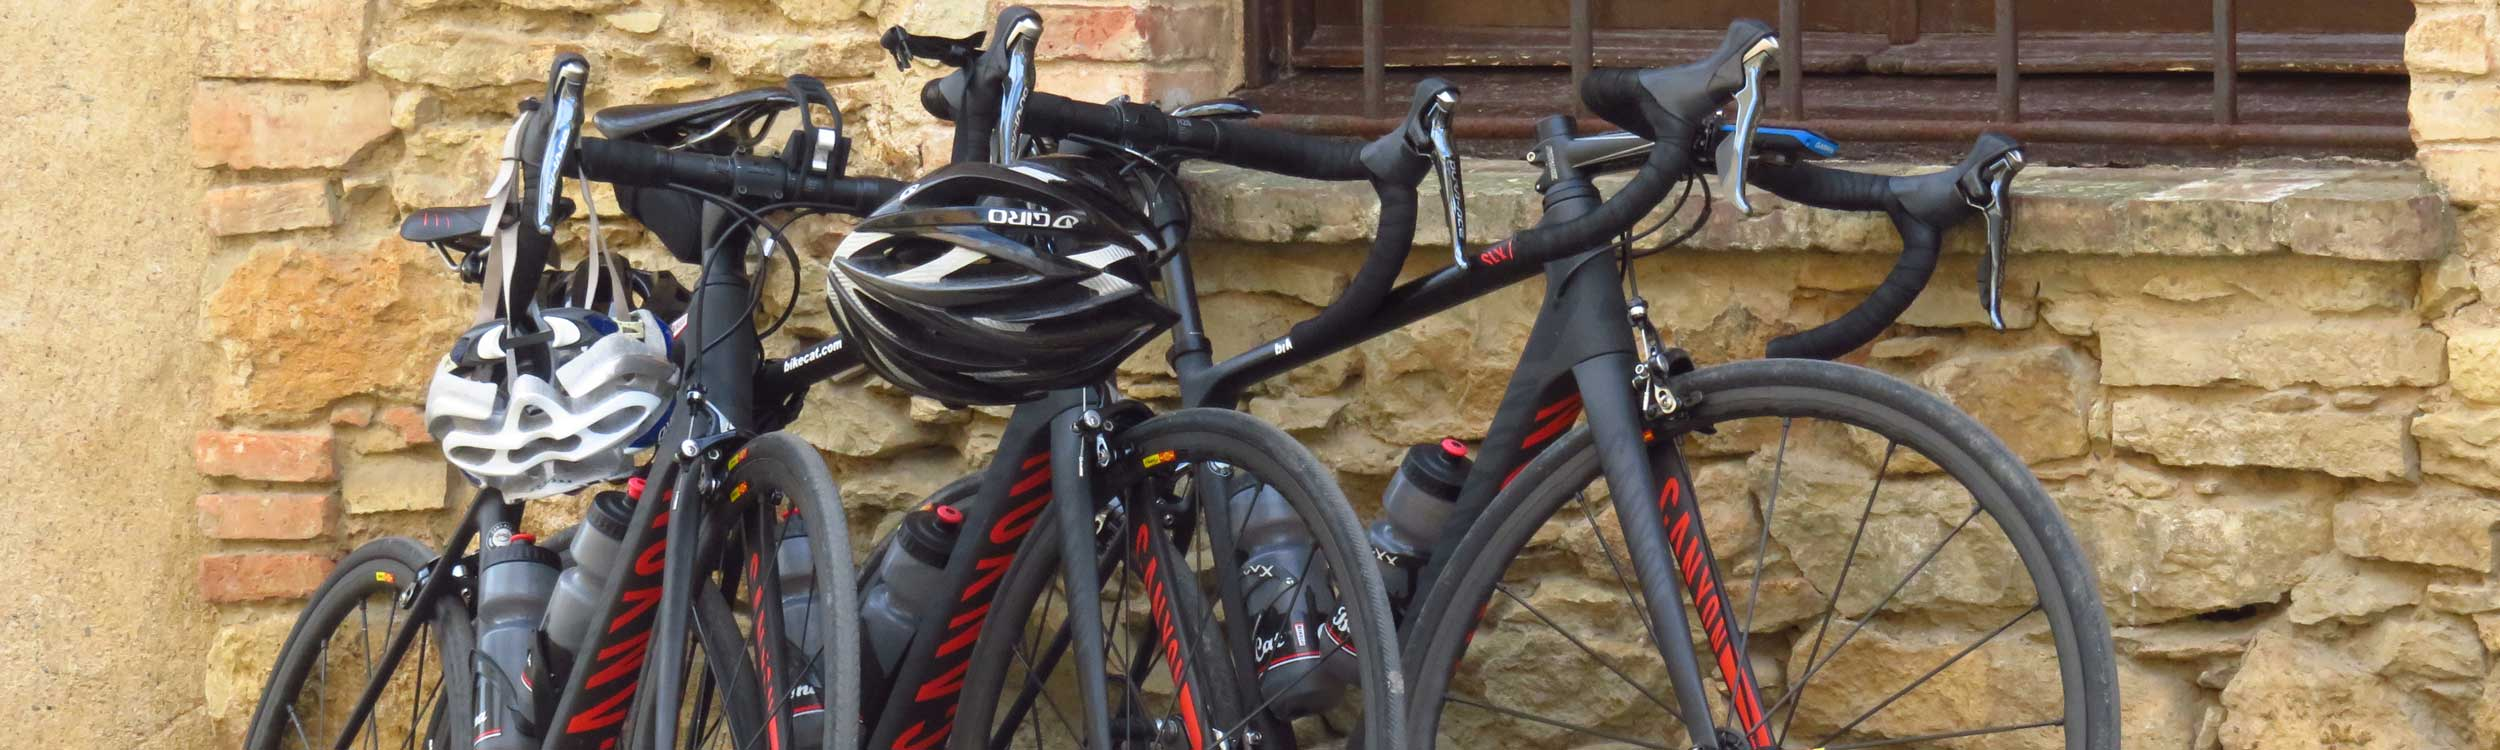 rental bikes in Girona - Bikecat guided rides